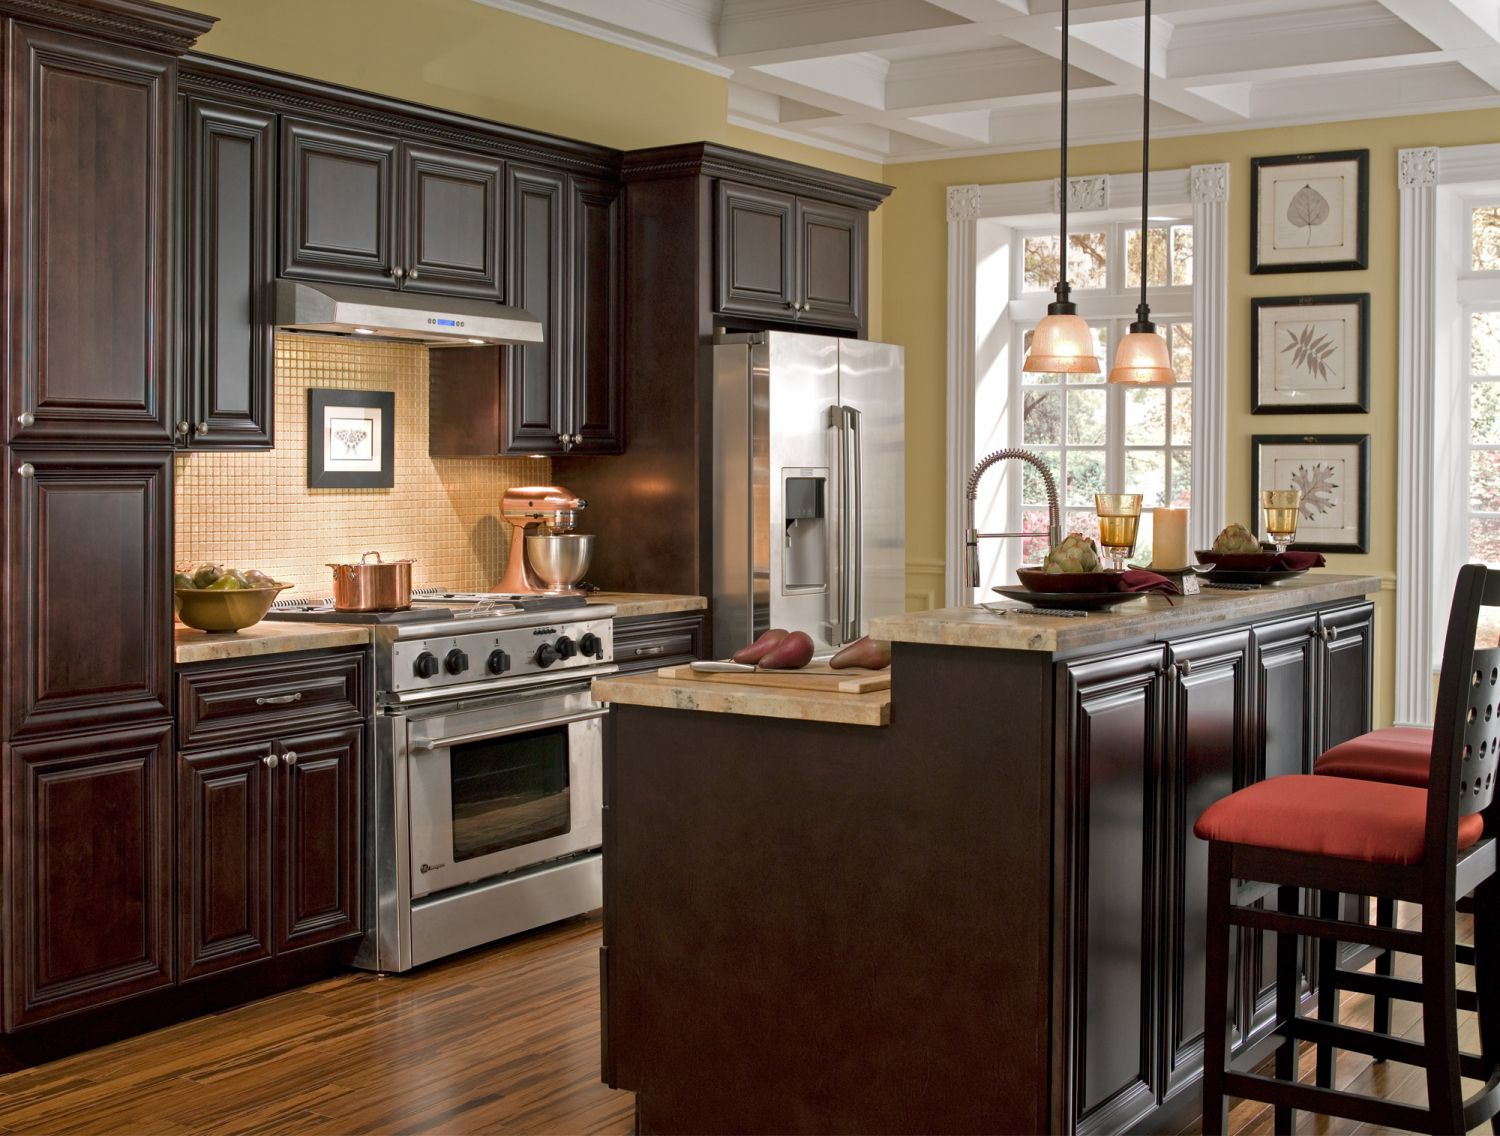 Chocolate Color Kitchen Cabinets - Kitchen Design Ideas for Small ...